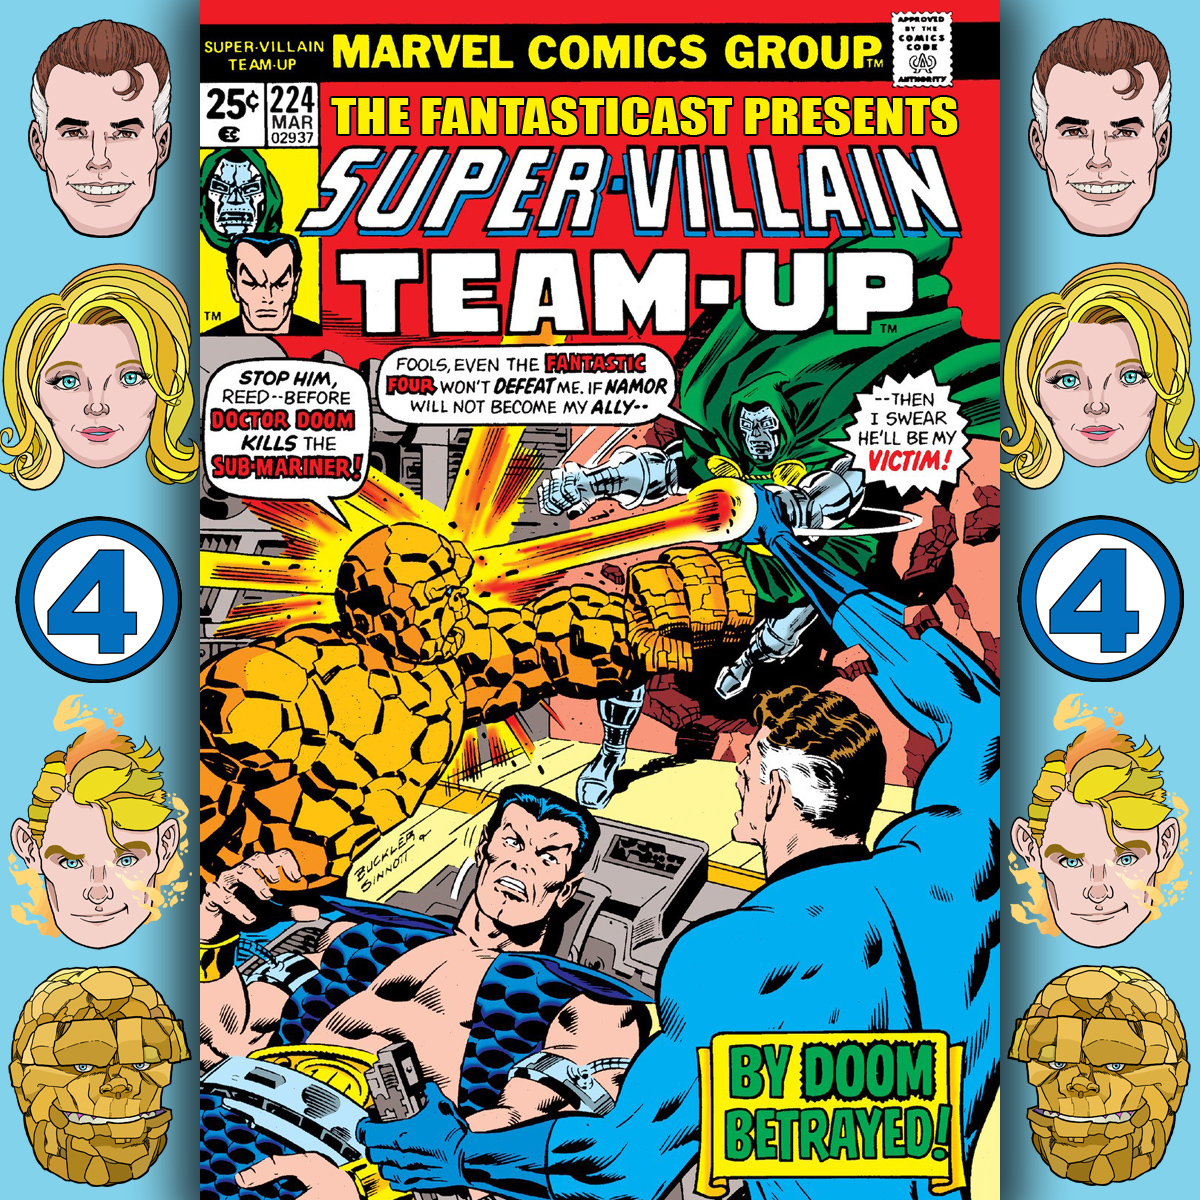 The Fantasticast Episode 224